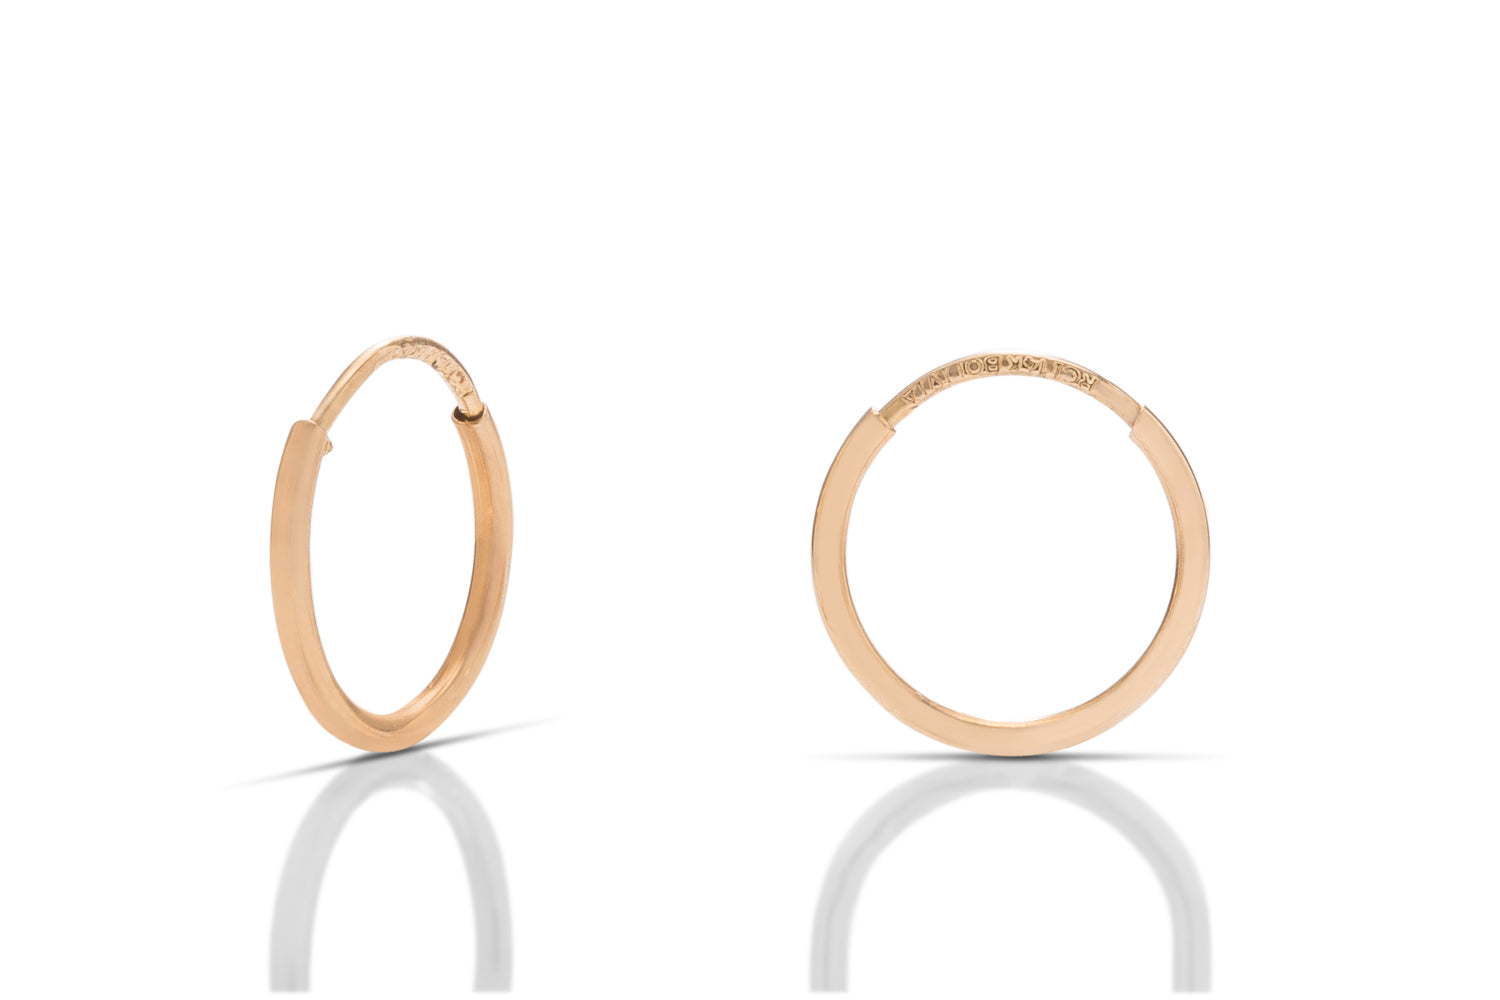 14k Gold Hoop Earrings - Charles Koll Jewellers